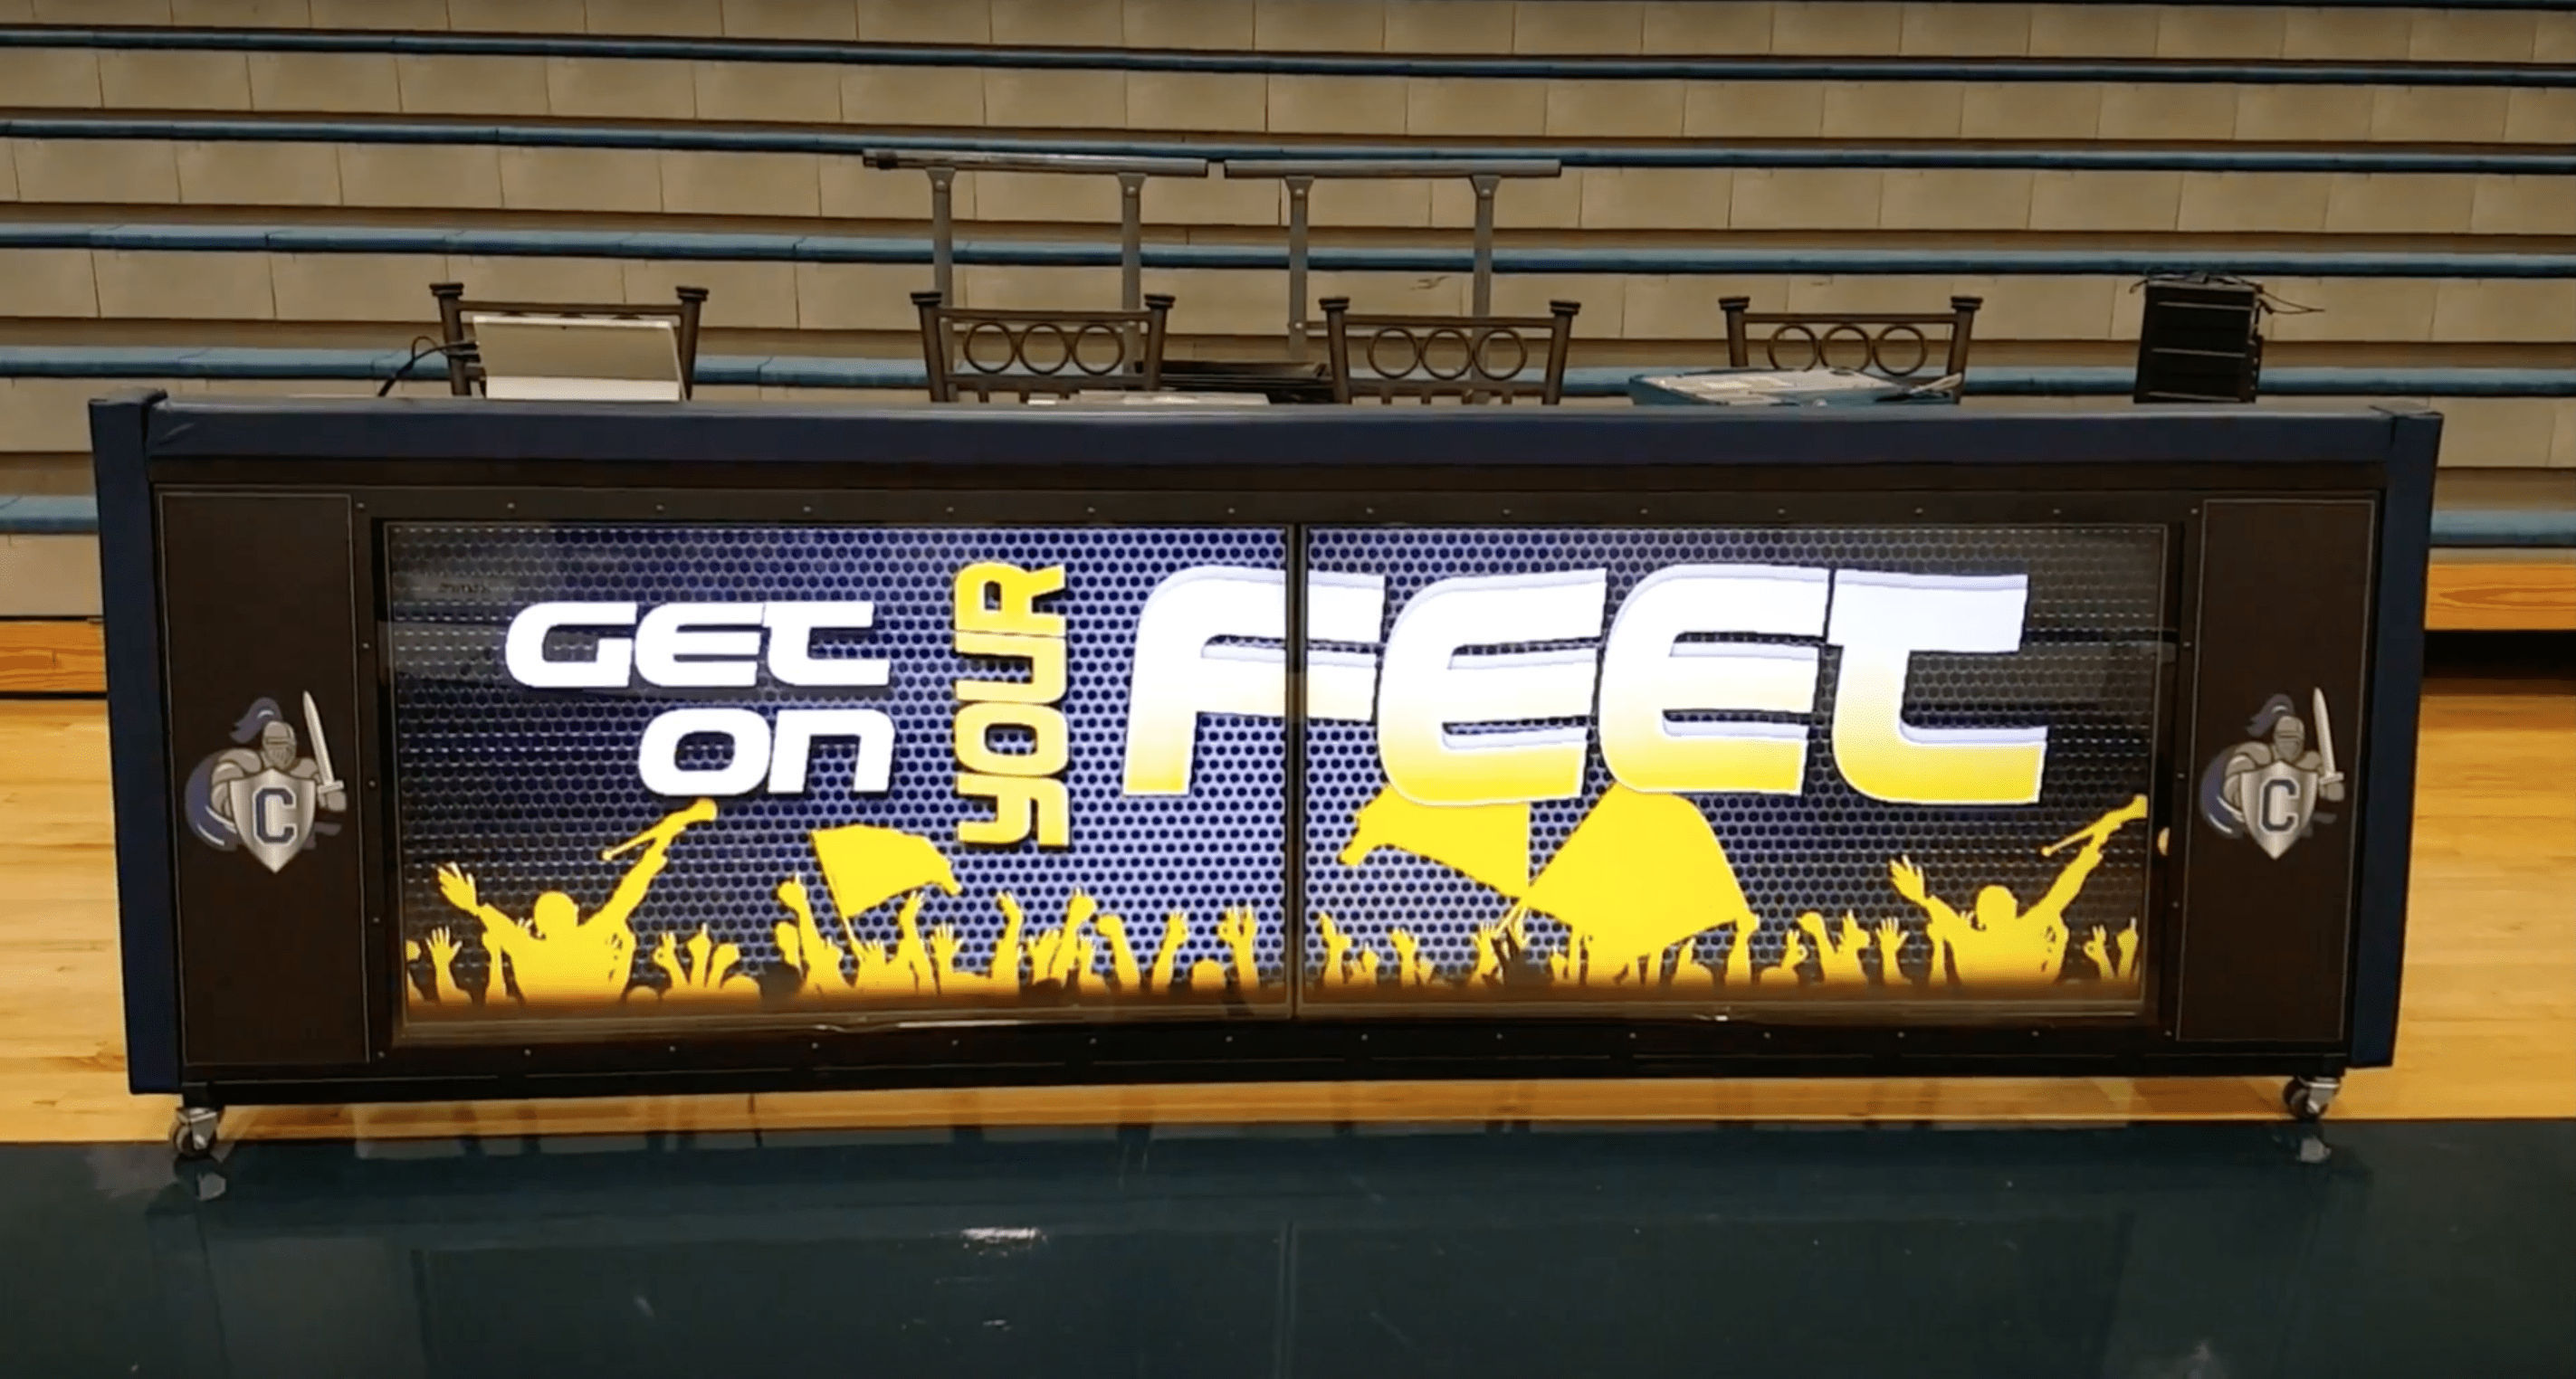 Sideline Interactive's Digital Scoreboards